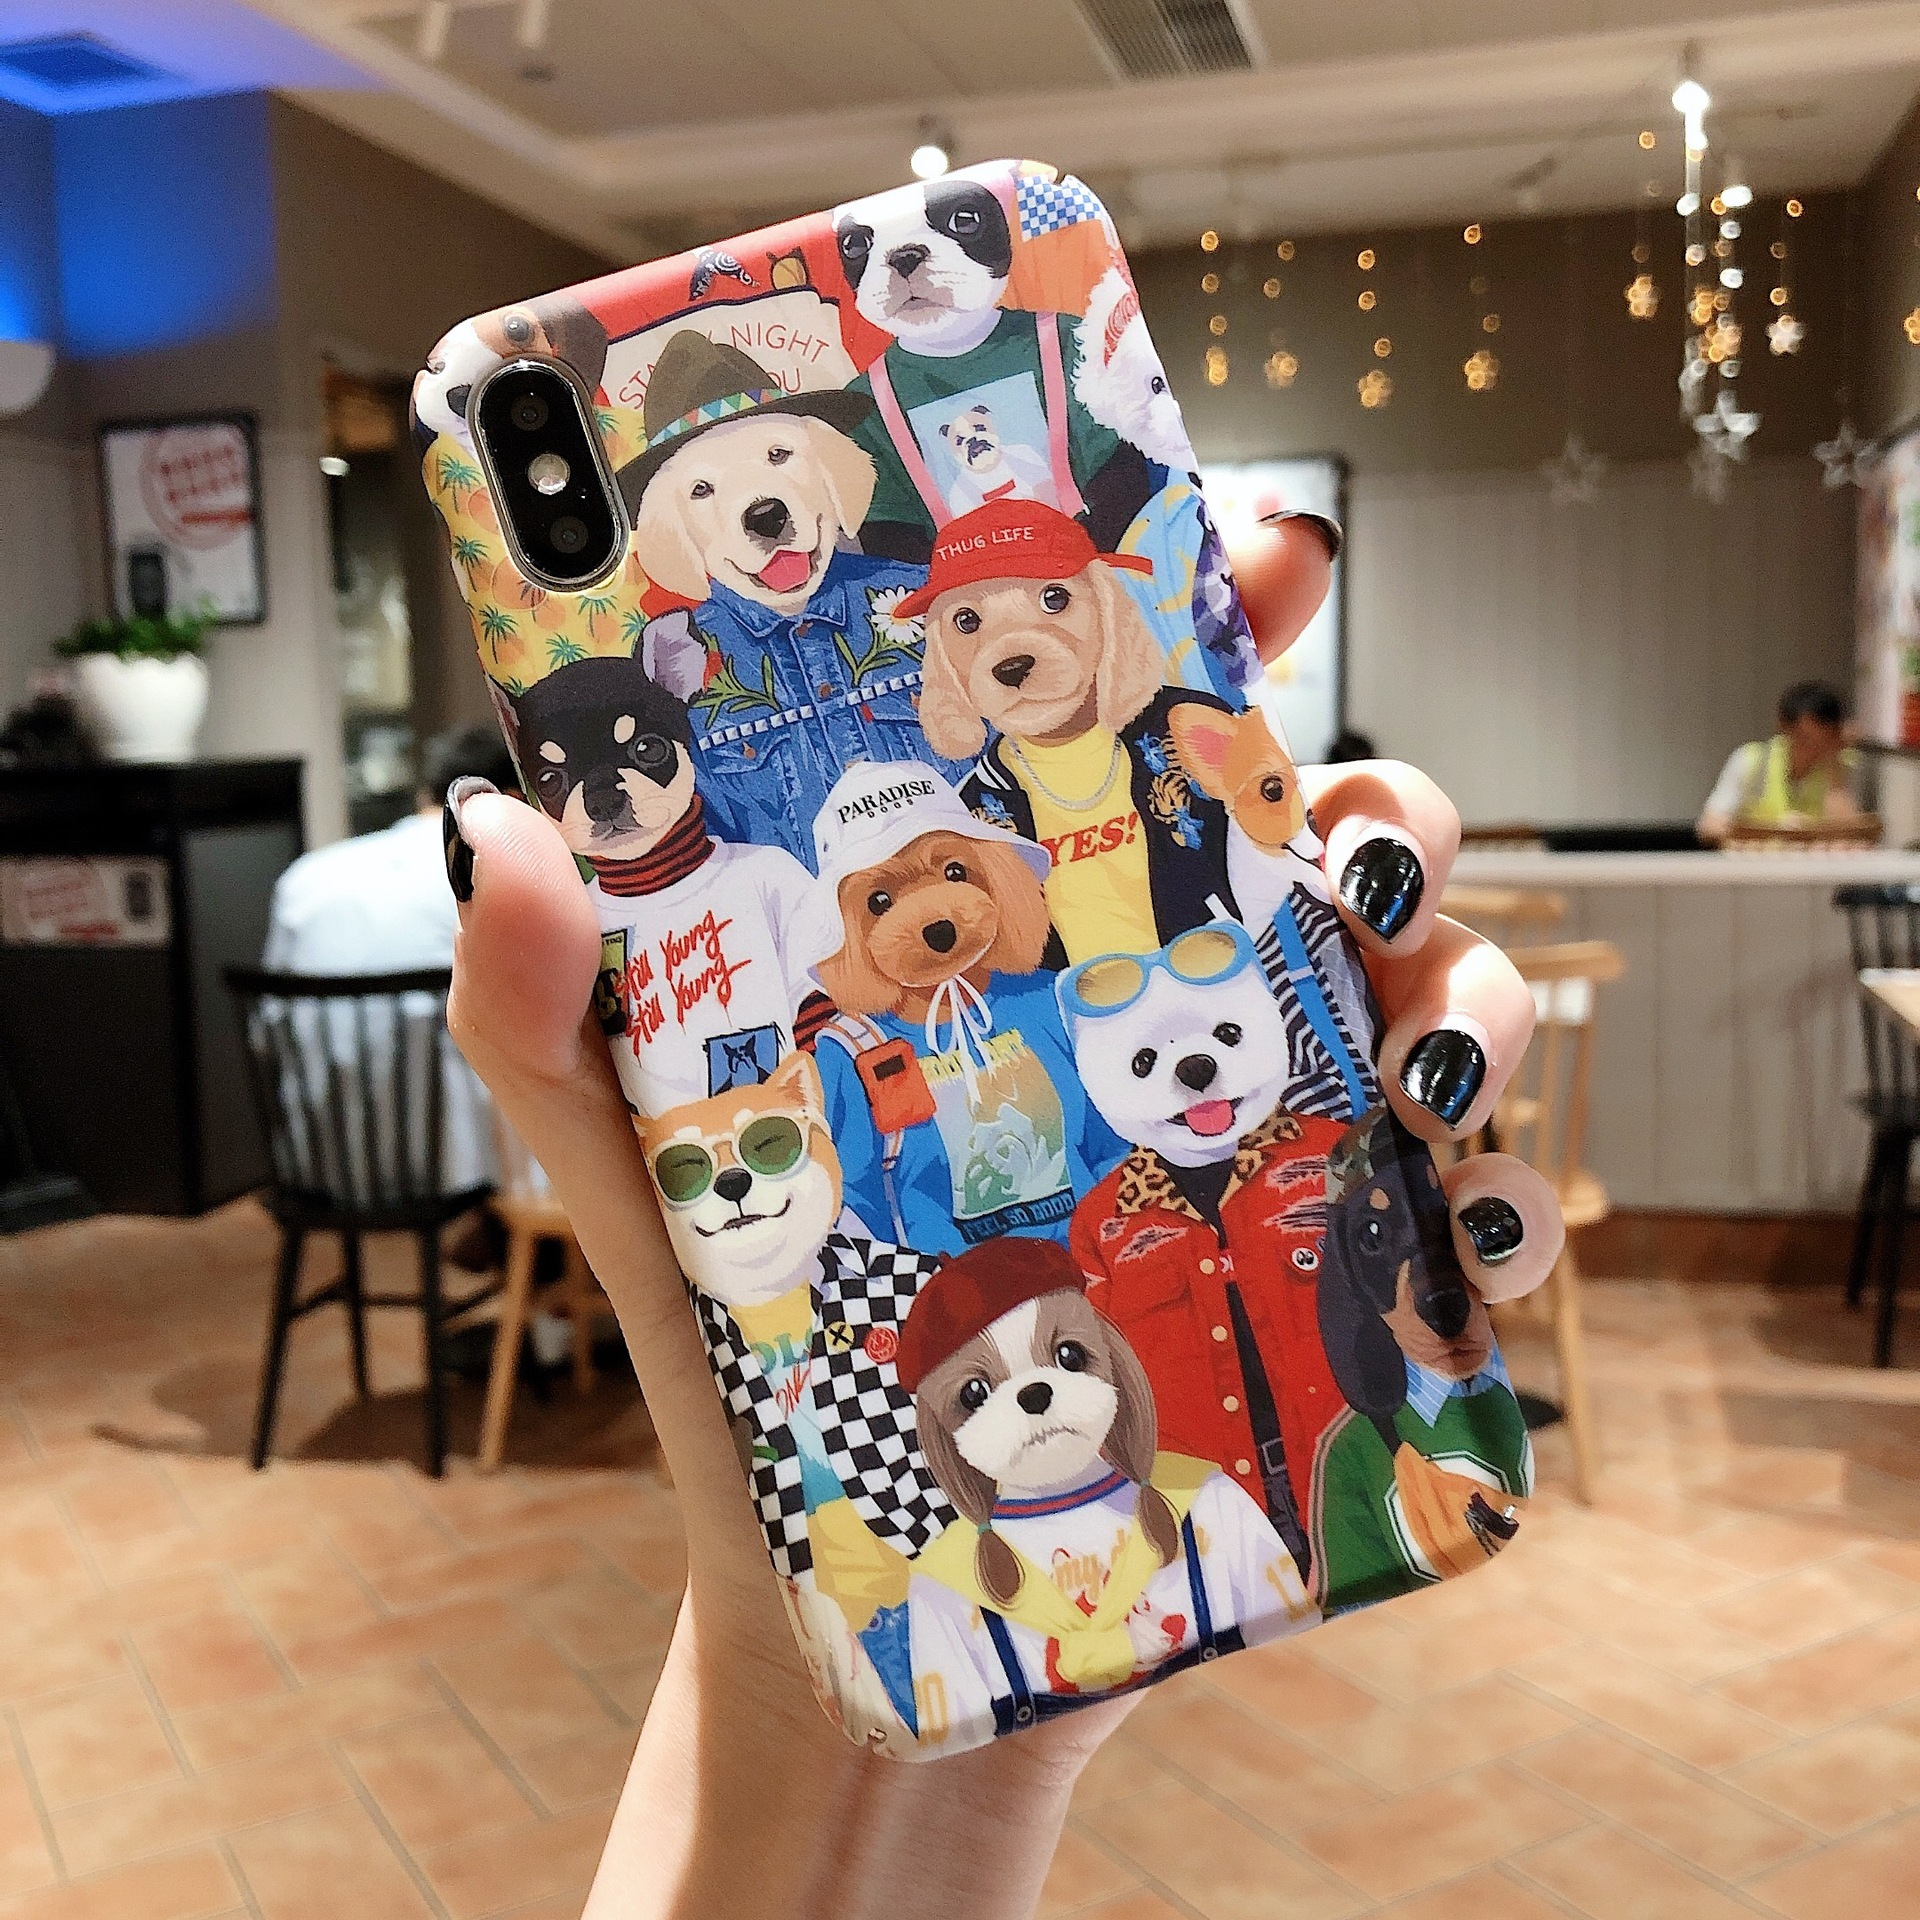 kawaii-husky-golden-retriever-corgi-poodle-dog-cute-phone-case-for-coque-iphone-7-8-6s-7-plus-xs-max-case-for-iphone-cover-x-xr